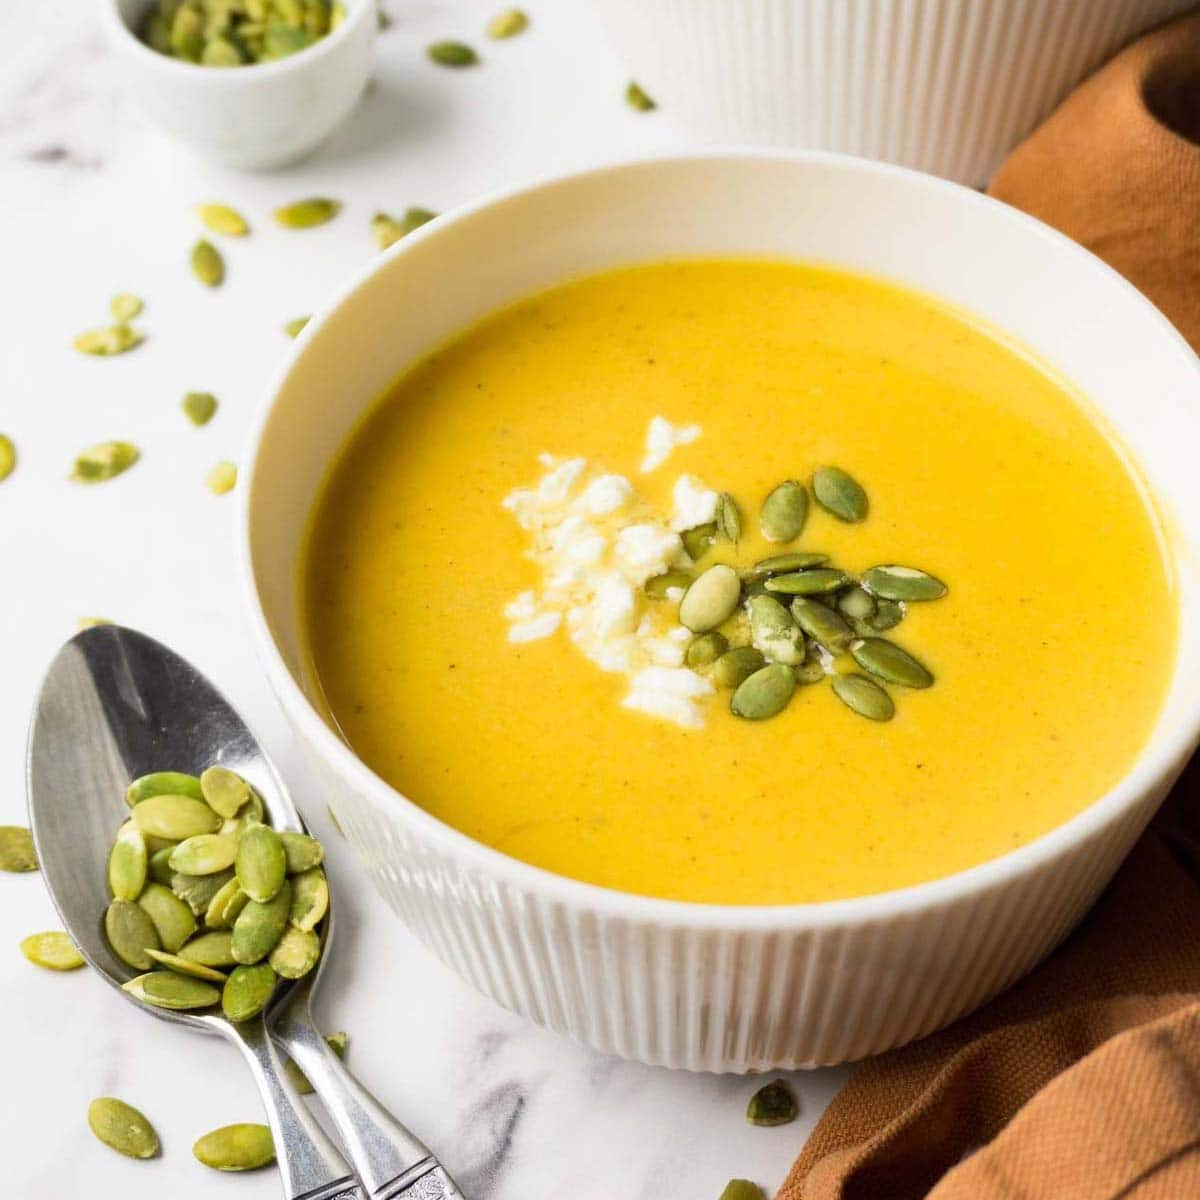 A white bowl filled with butternut squash soup garnished with pepitas and crumbled feta cheese.